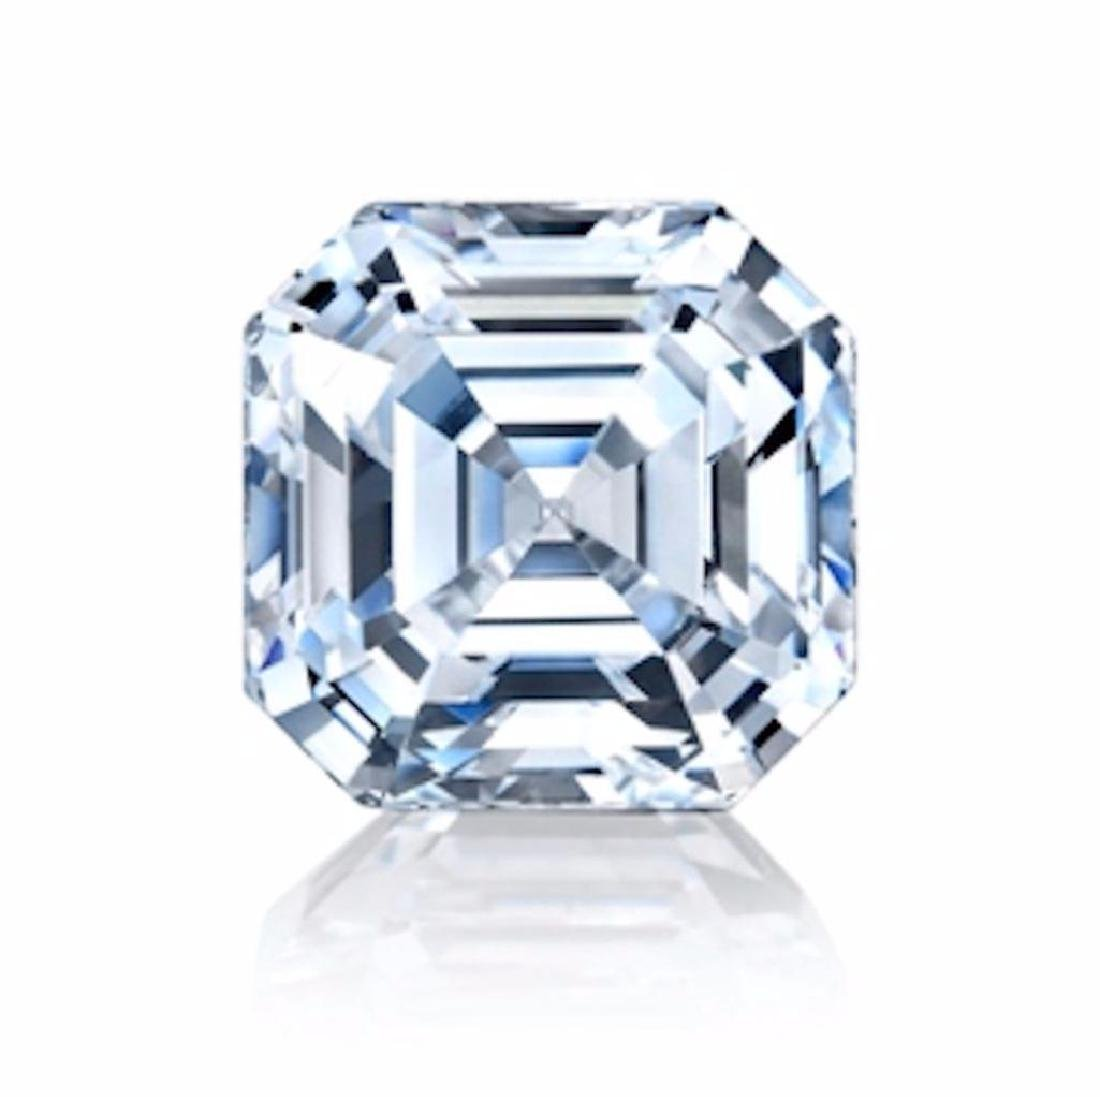 2.08cts Asscher Cut Bianco Diamond 6AAAAAA - Loose